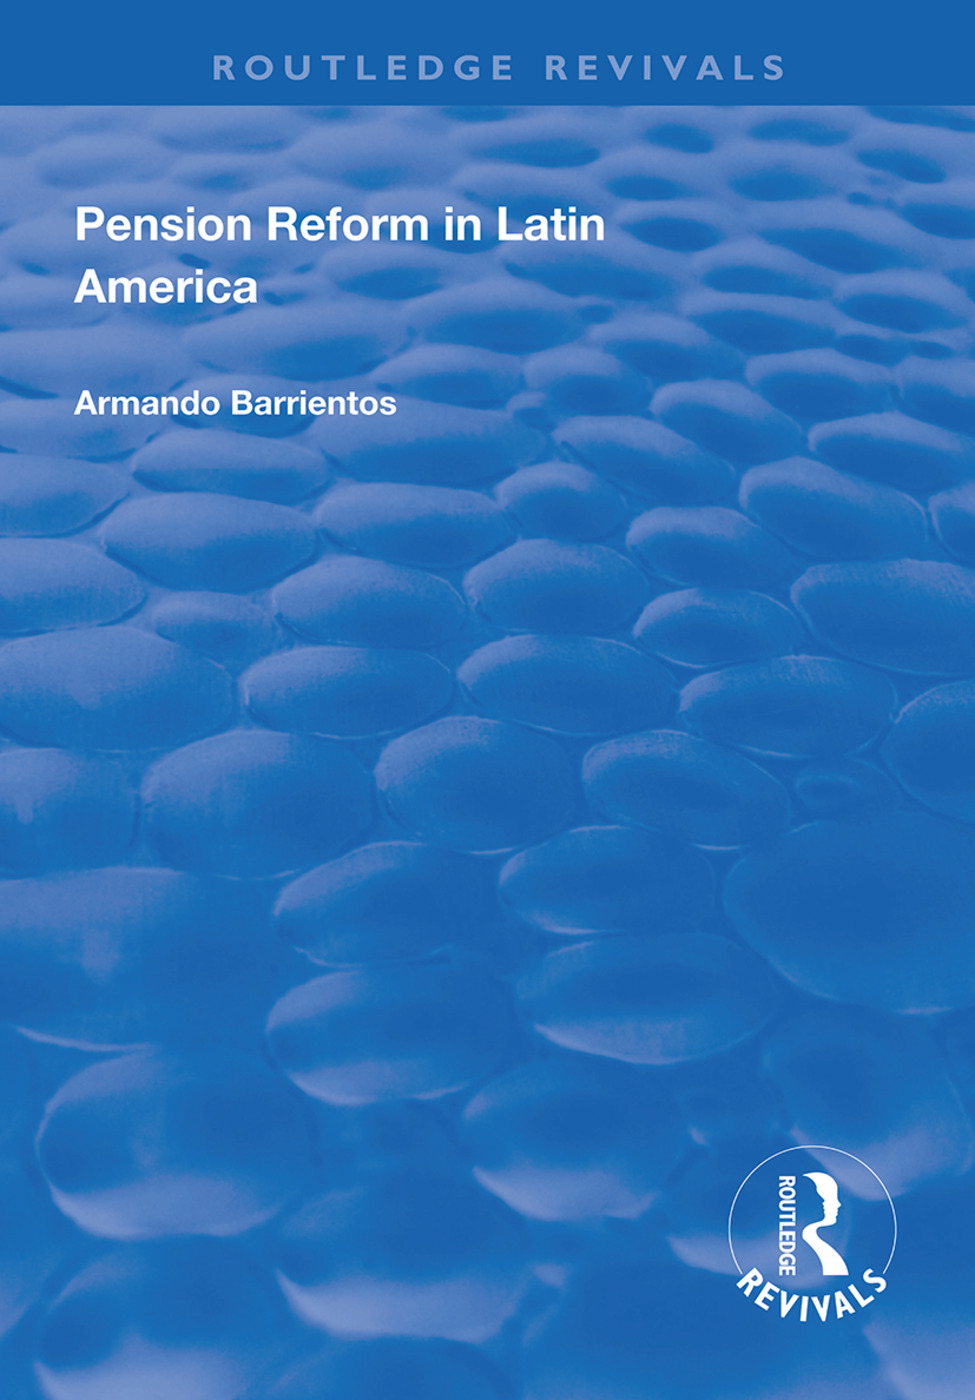 Pension Reform in Latin America